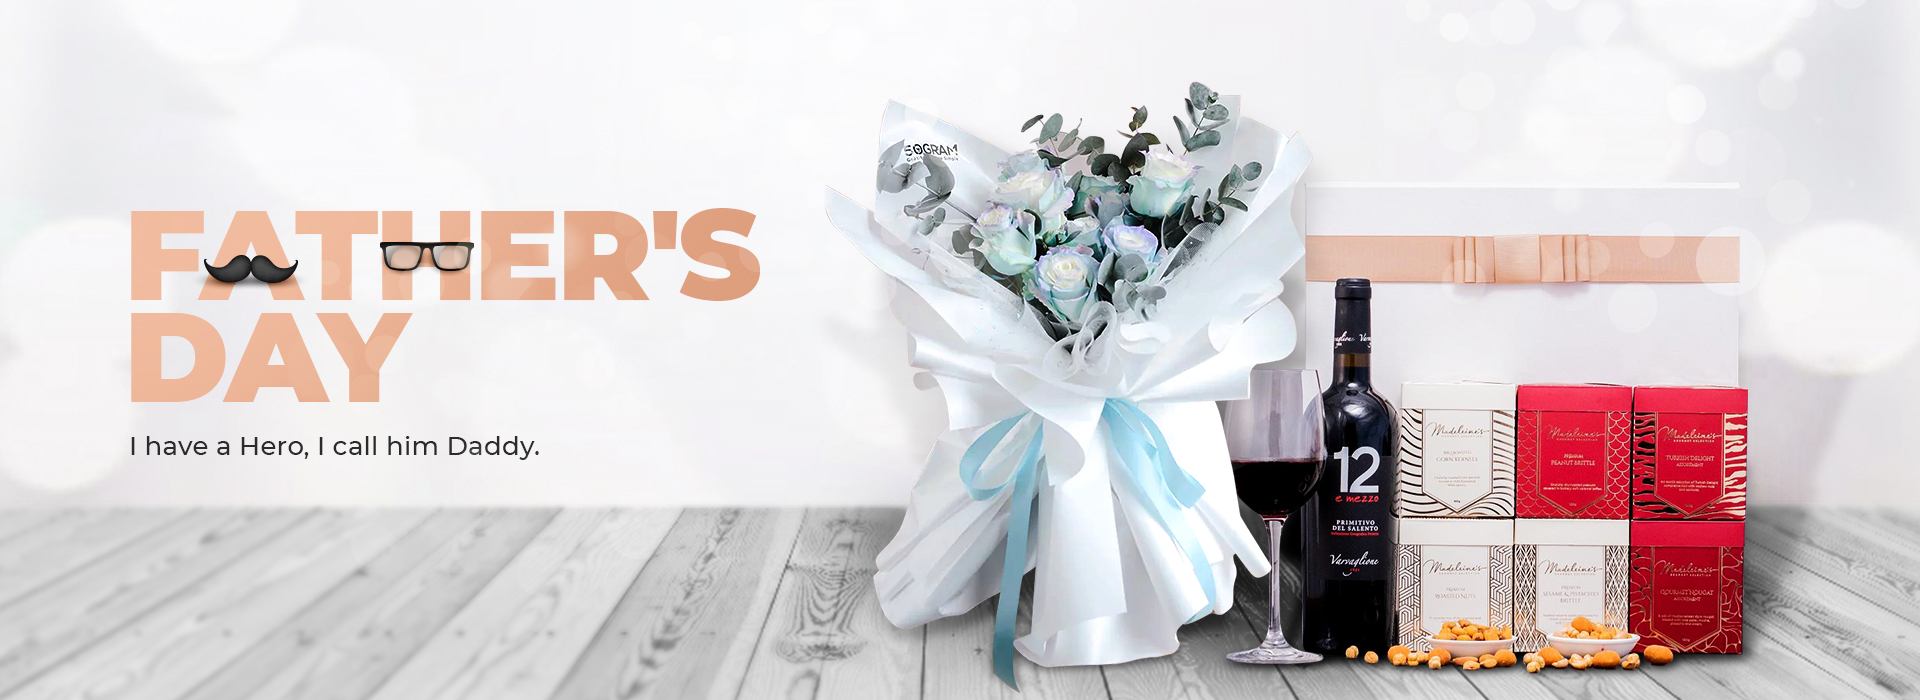 Fathers day web banner v1 2